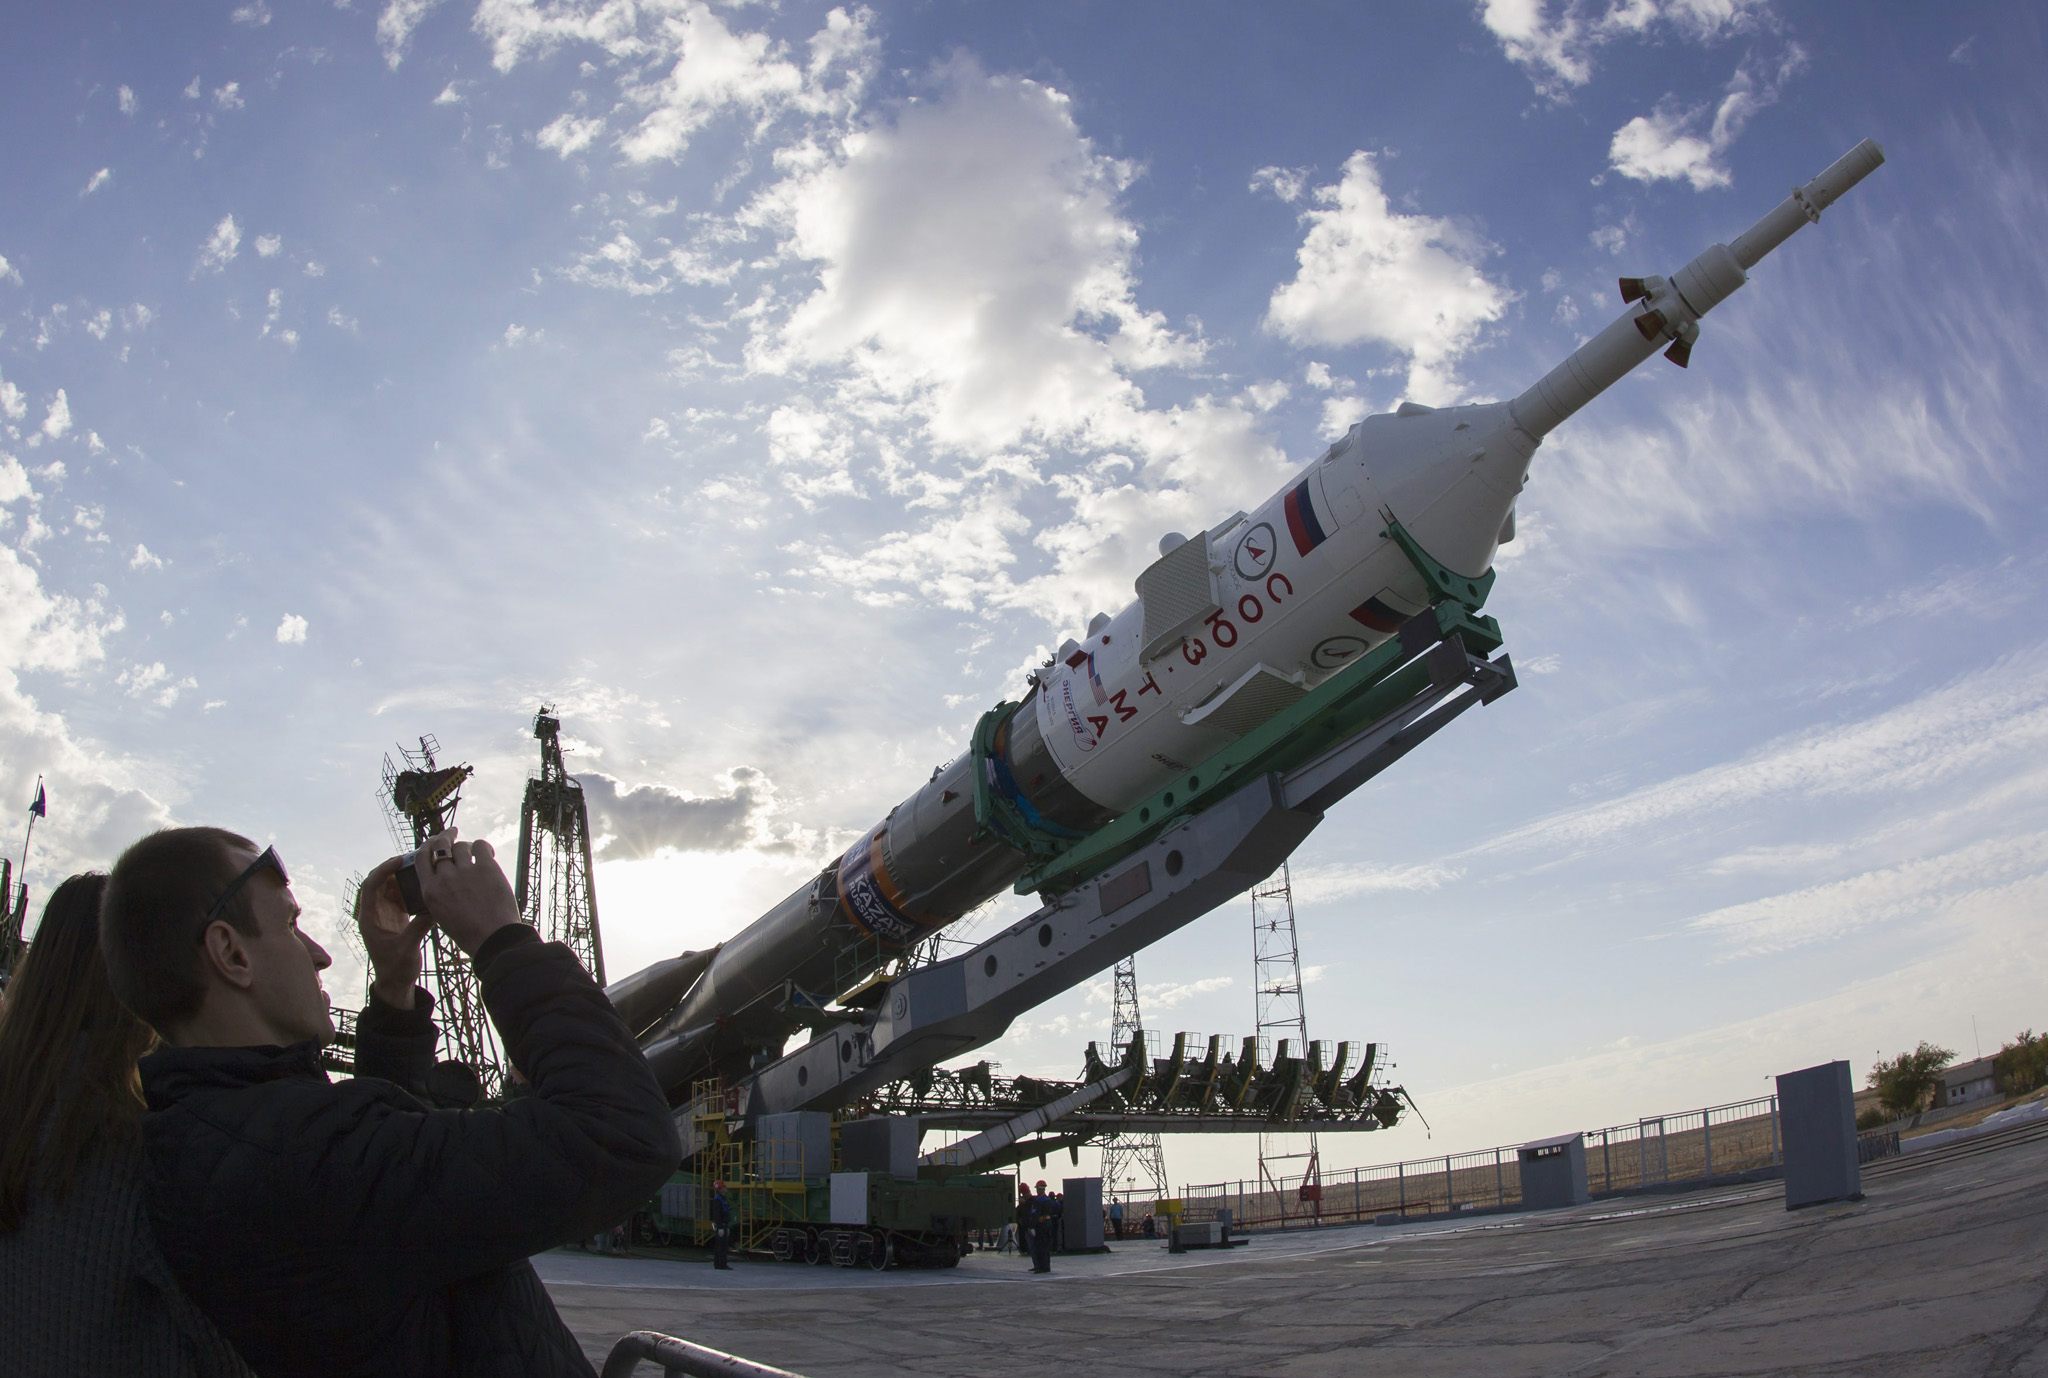 A man takes a photo of the Soyuz TMA-14M spacecraft as it is lifted to its launch pad at Baikonur cosmodrome...A man takes a photo of the Soyuz TMA-14M spacecraft as it is lifted to its launch pad at Baikonur cosmodrome September 23, 2014. The Soyuz is scheduled to carry Barry Wilmore of the U.S., Elena Serova and Alexander Samokutyaev of Russia to the International Space Station on September 26. REUTERS/Shamil Zhumatov (KAZAKHSTAN - Tags: SCIENCE TECHNOLOGY)